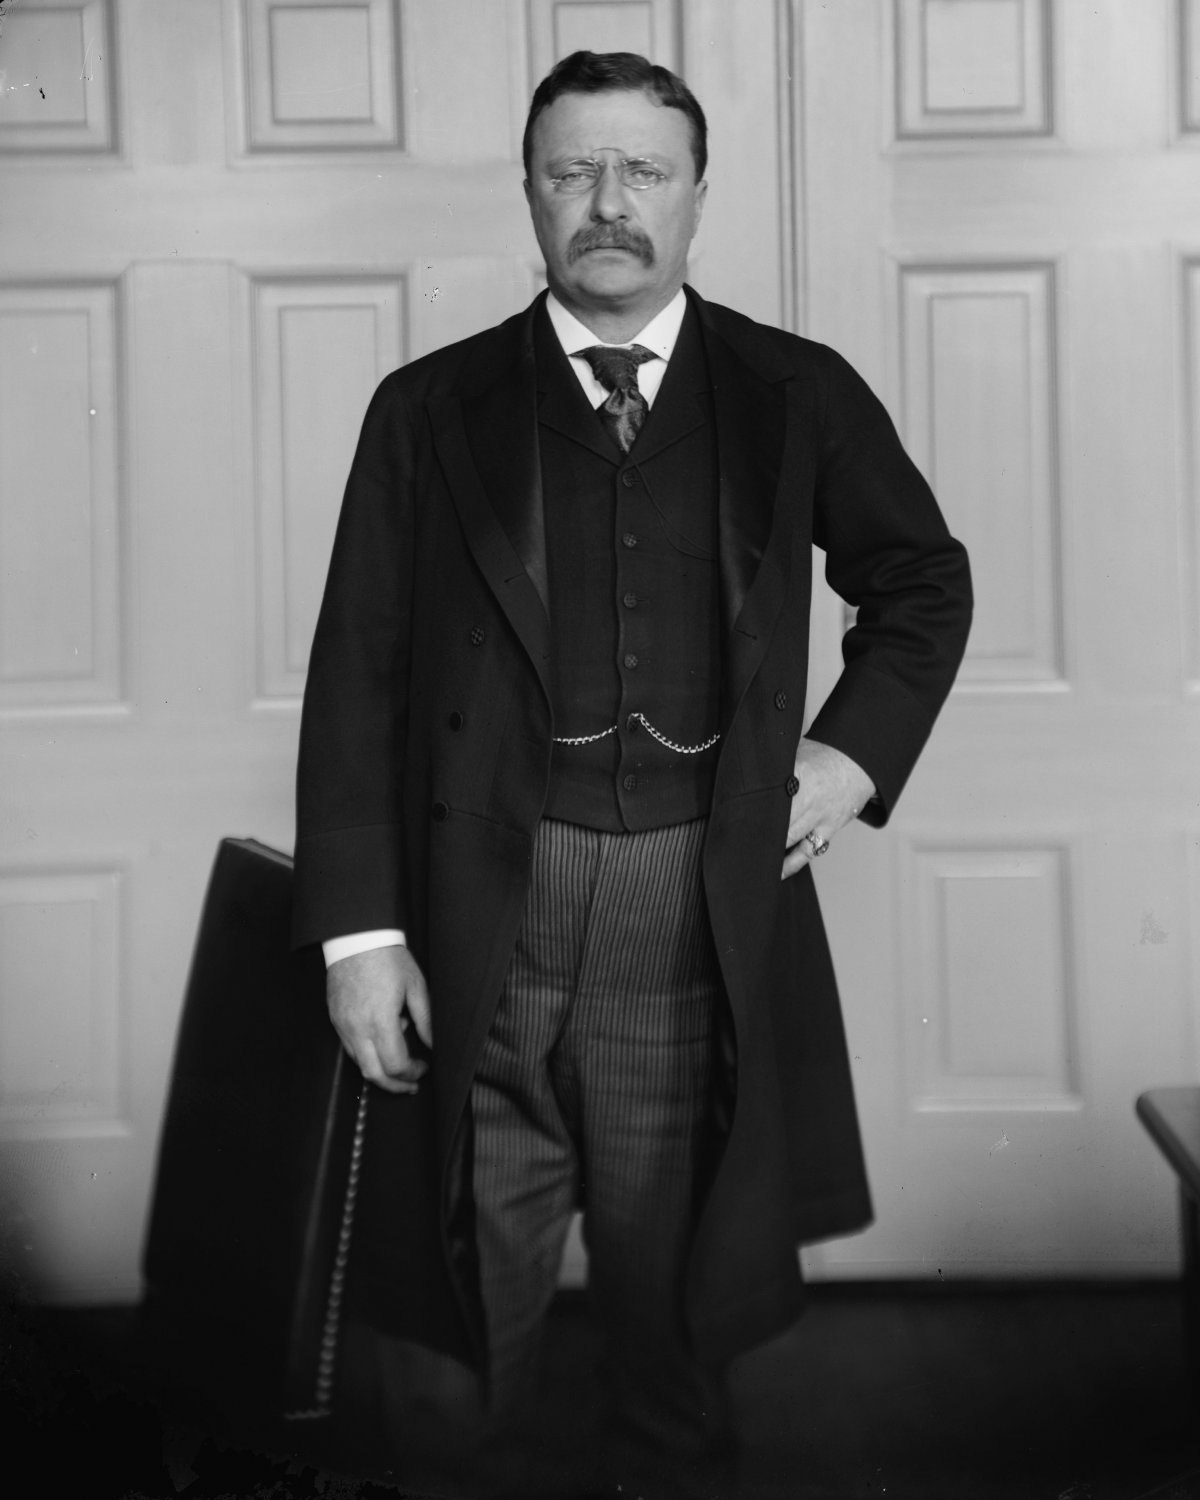 Theodore Roosevelt 26th President Of The United States